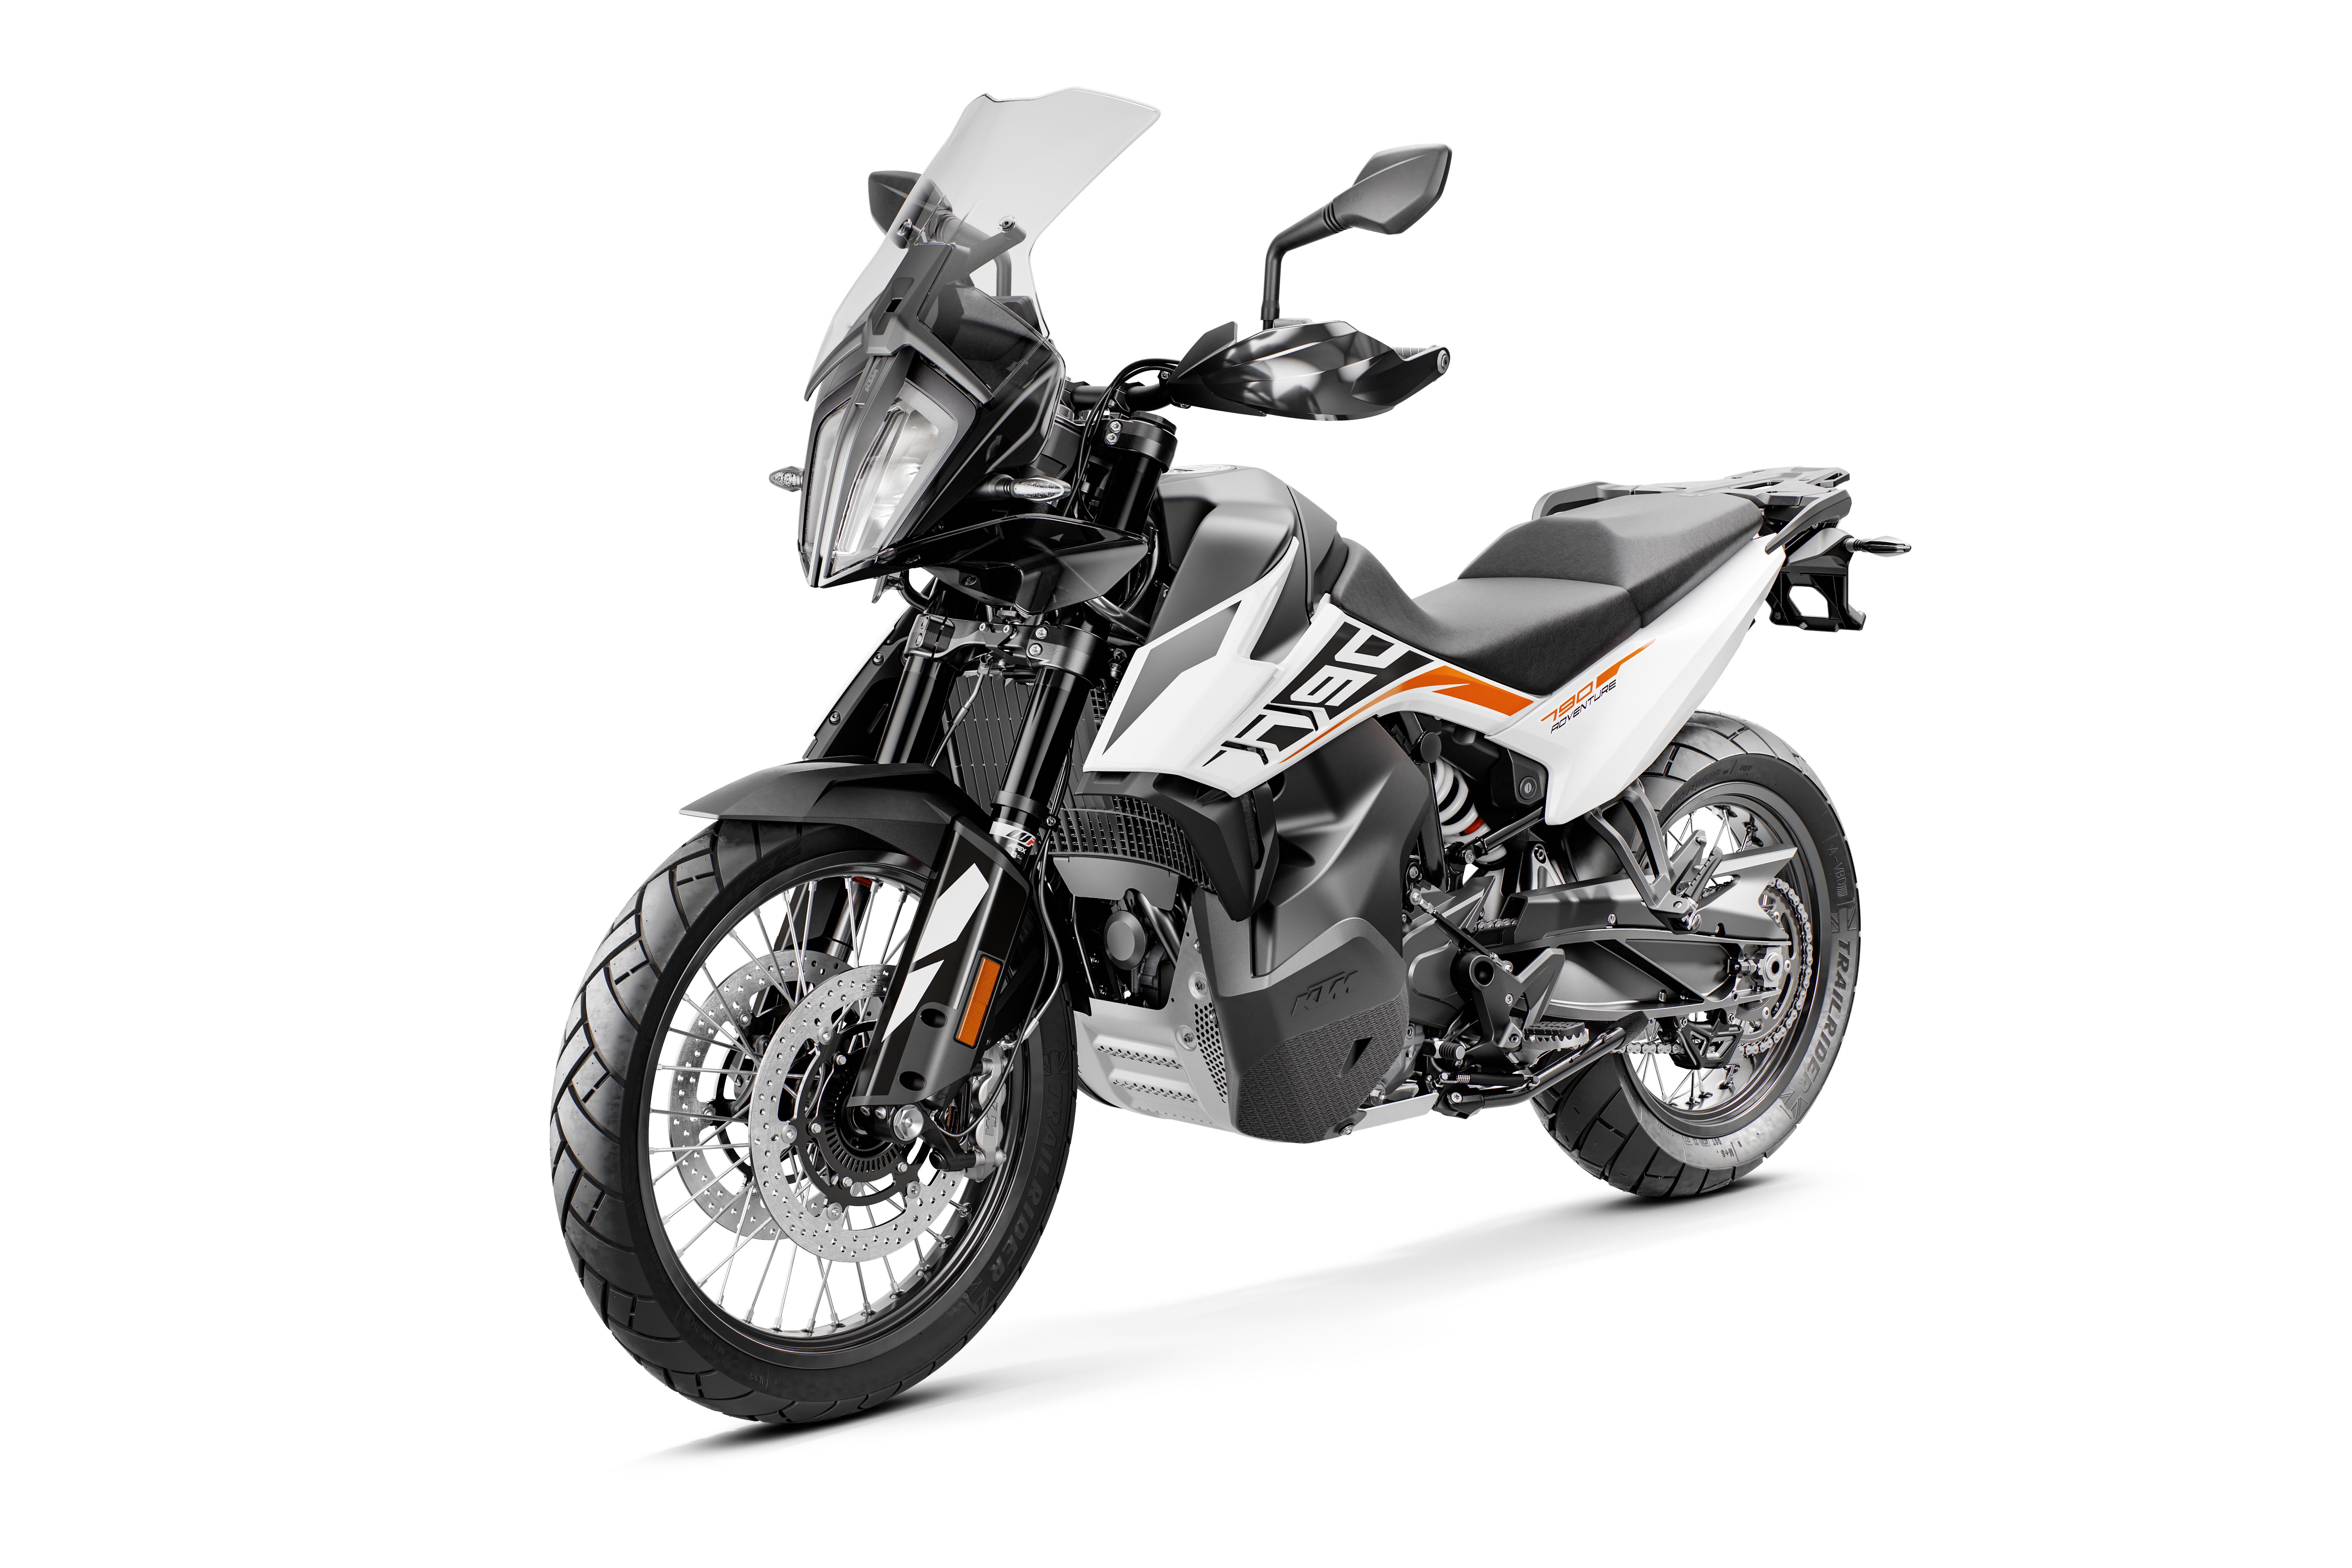 2019 ktm 790 adventure and 790 adventure r first look. Black Bedroom Furniture Sets. Home Design Ideas